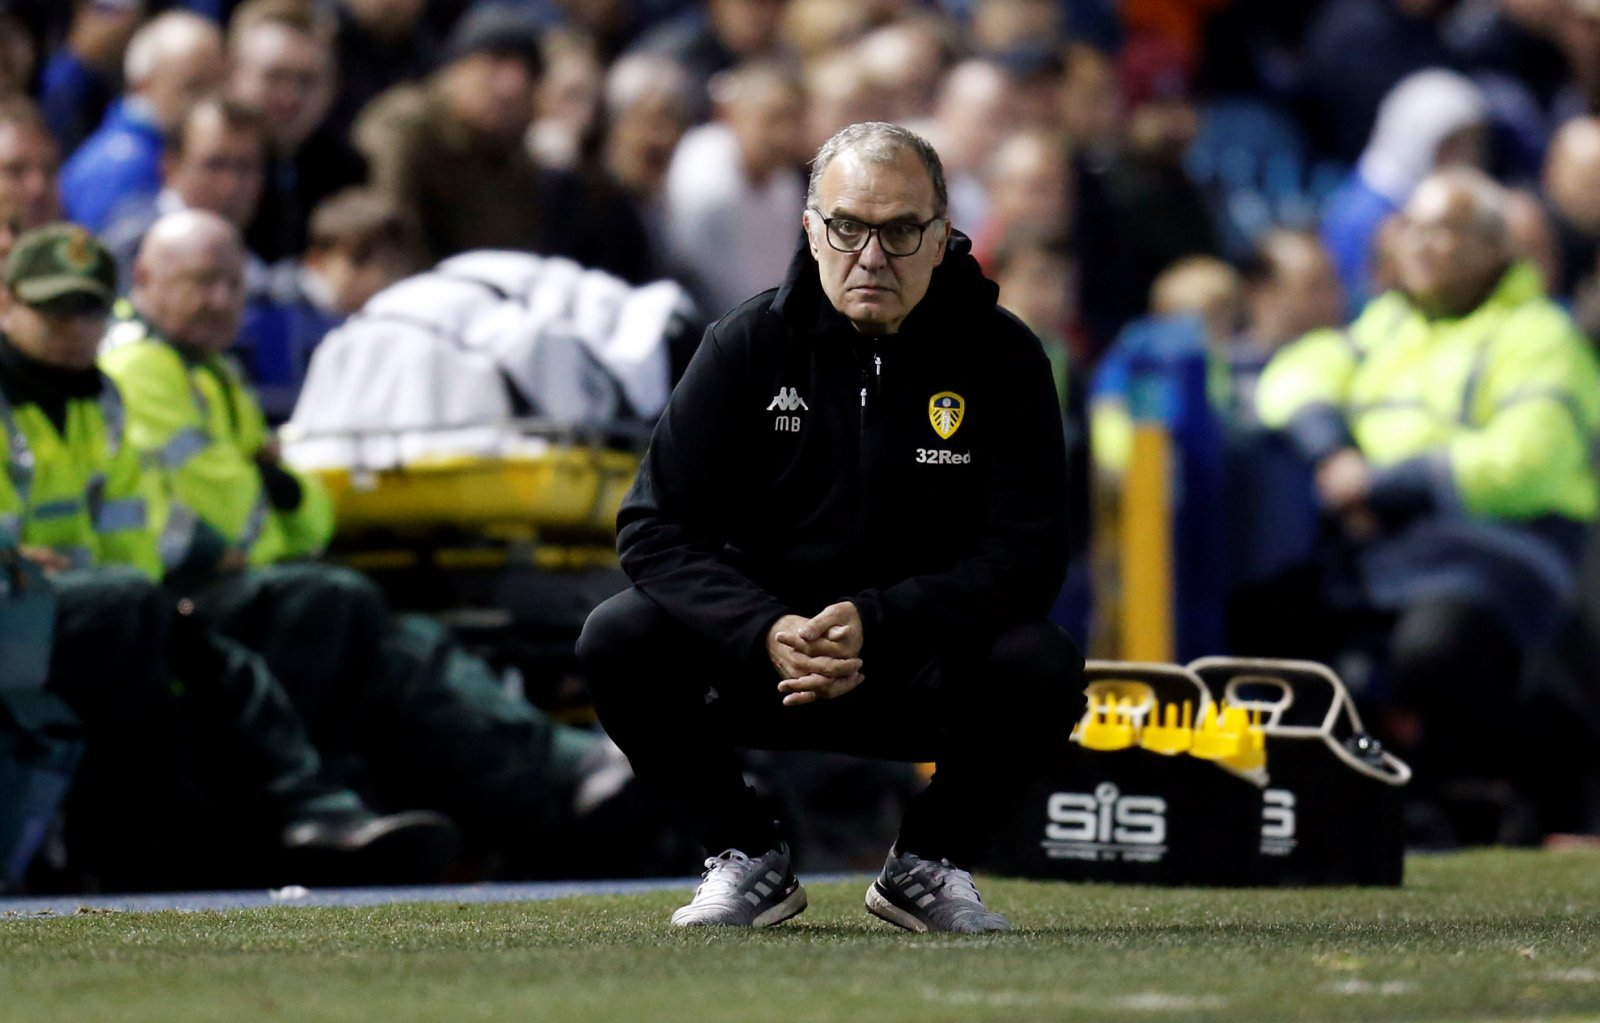 Leeds United fans on Twitter still firmly behind Bielsa despite Queens Park Rangers defeat